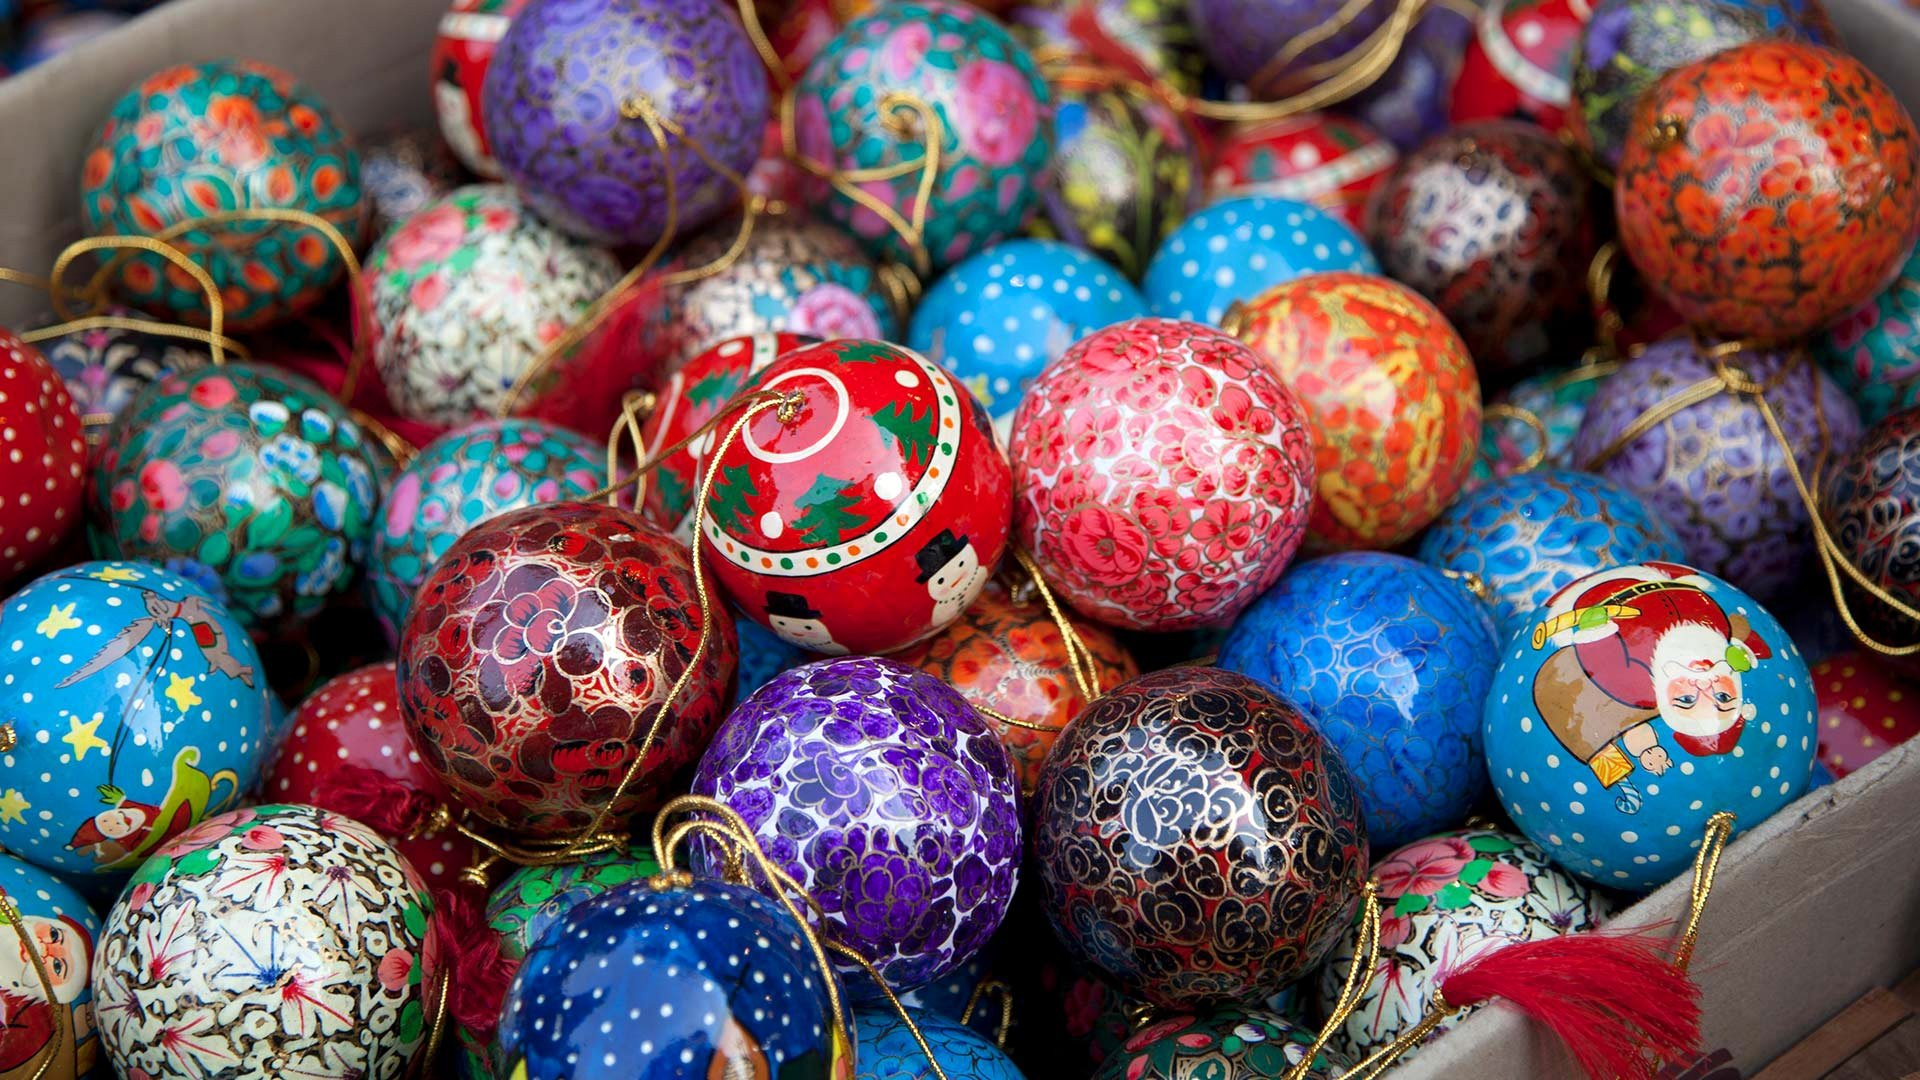 Awesome Christmas Ornaments/Decorations free wallpaper ID:434341 for full hd 1920x1080 desktop